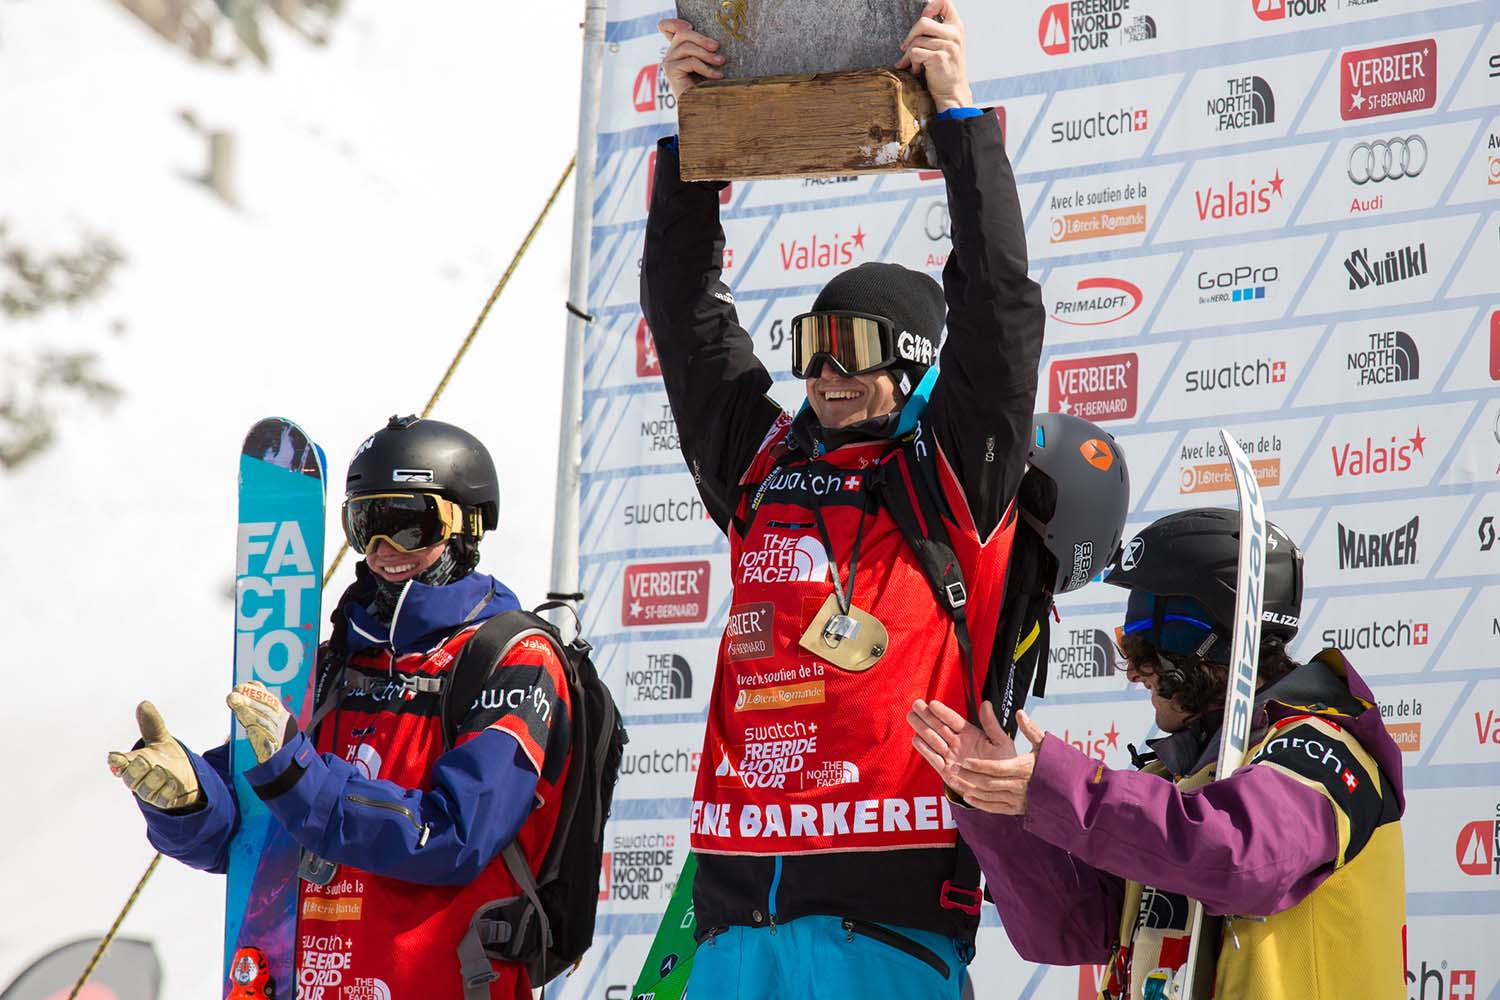 Mens Verbier Podium - Reine, Ian and Loic